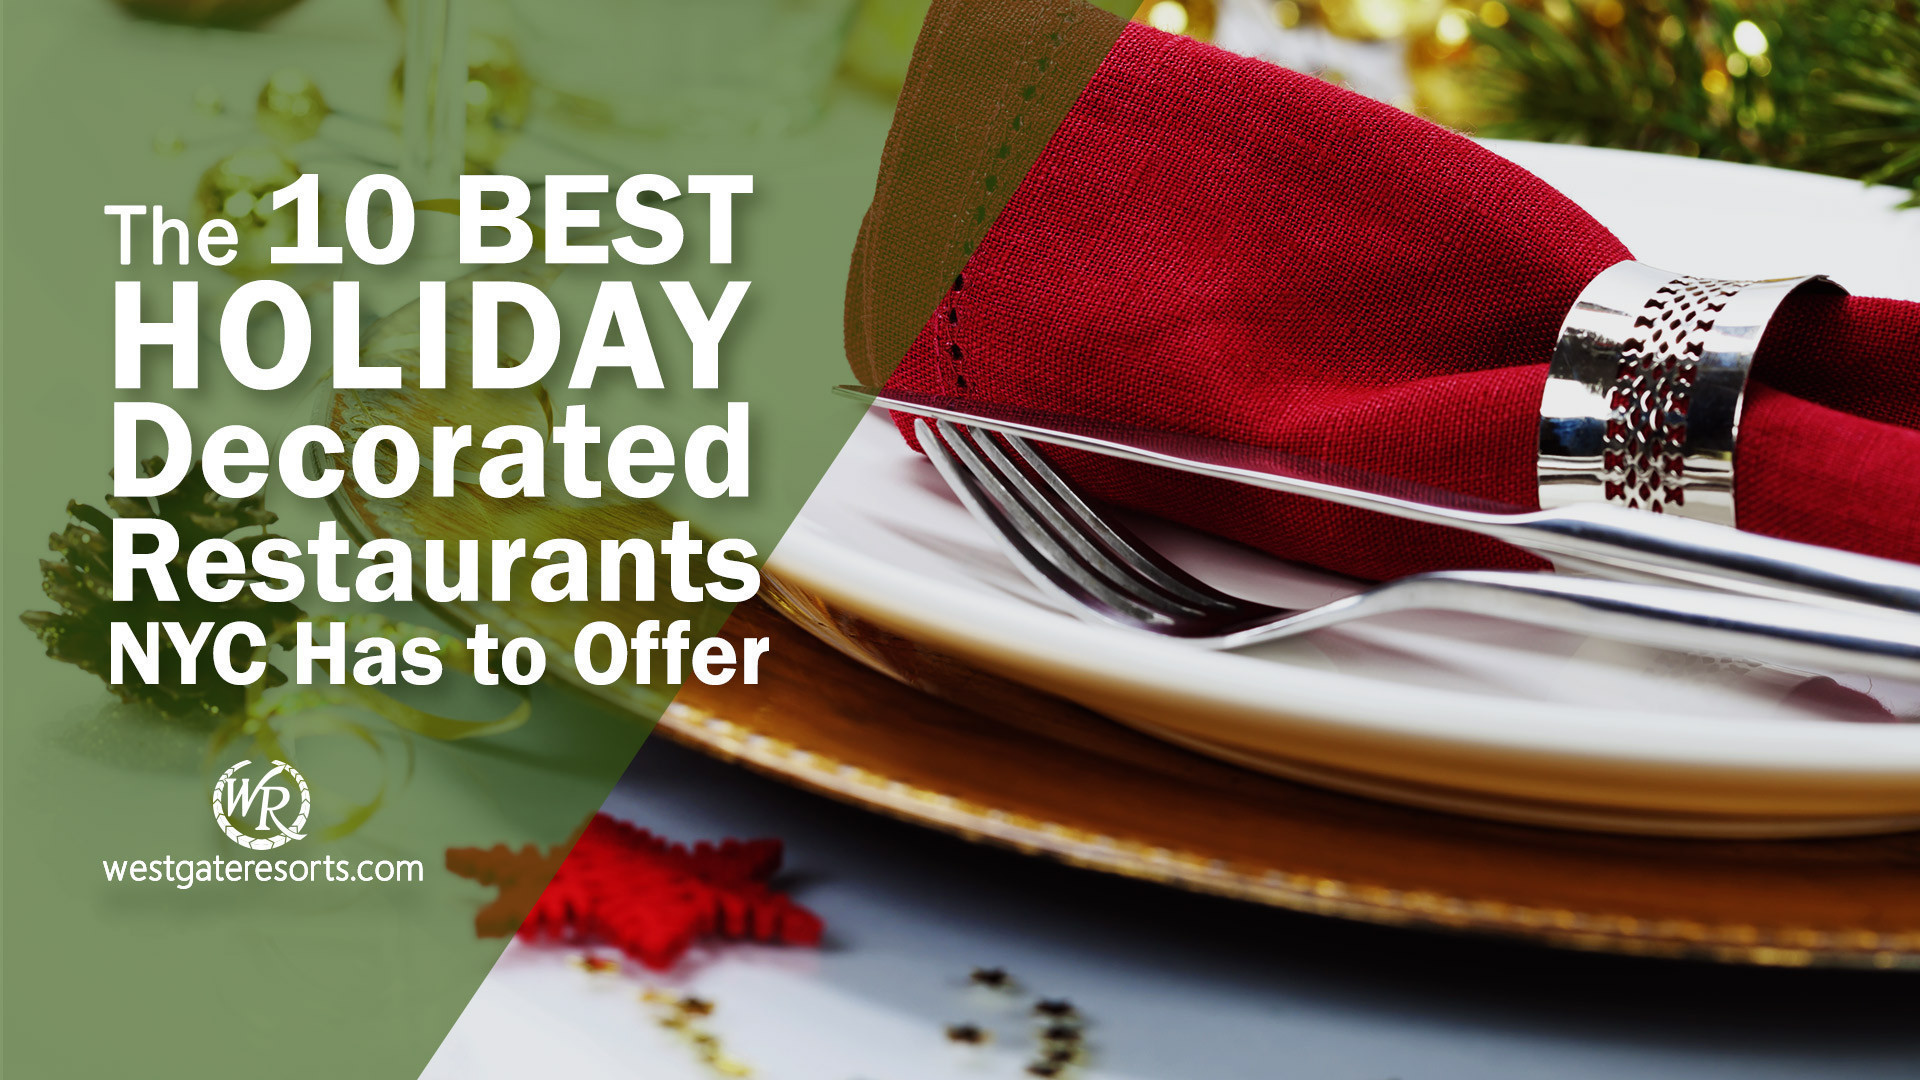 The 10 Best Christmas Decorated Restaurants NYC Has to Offer | Westgate New York City